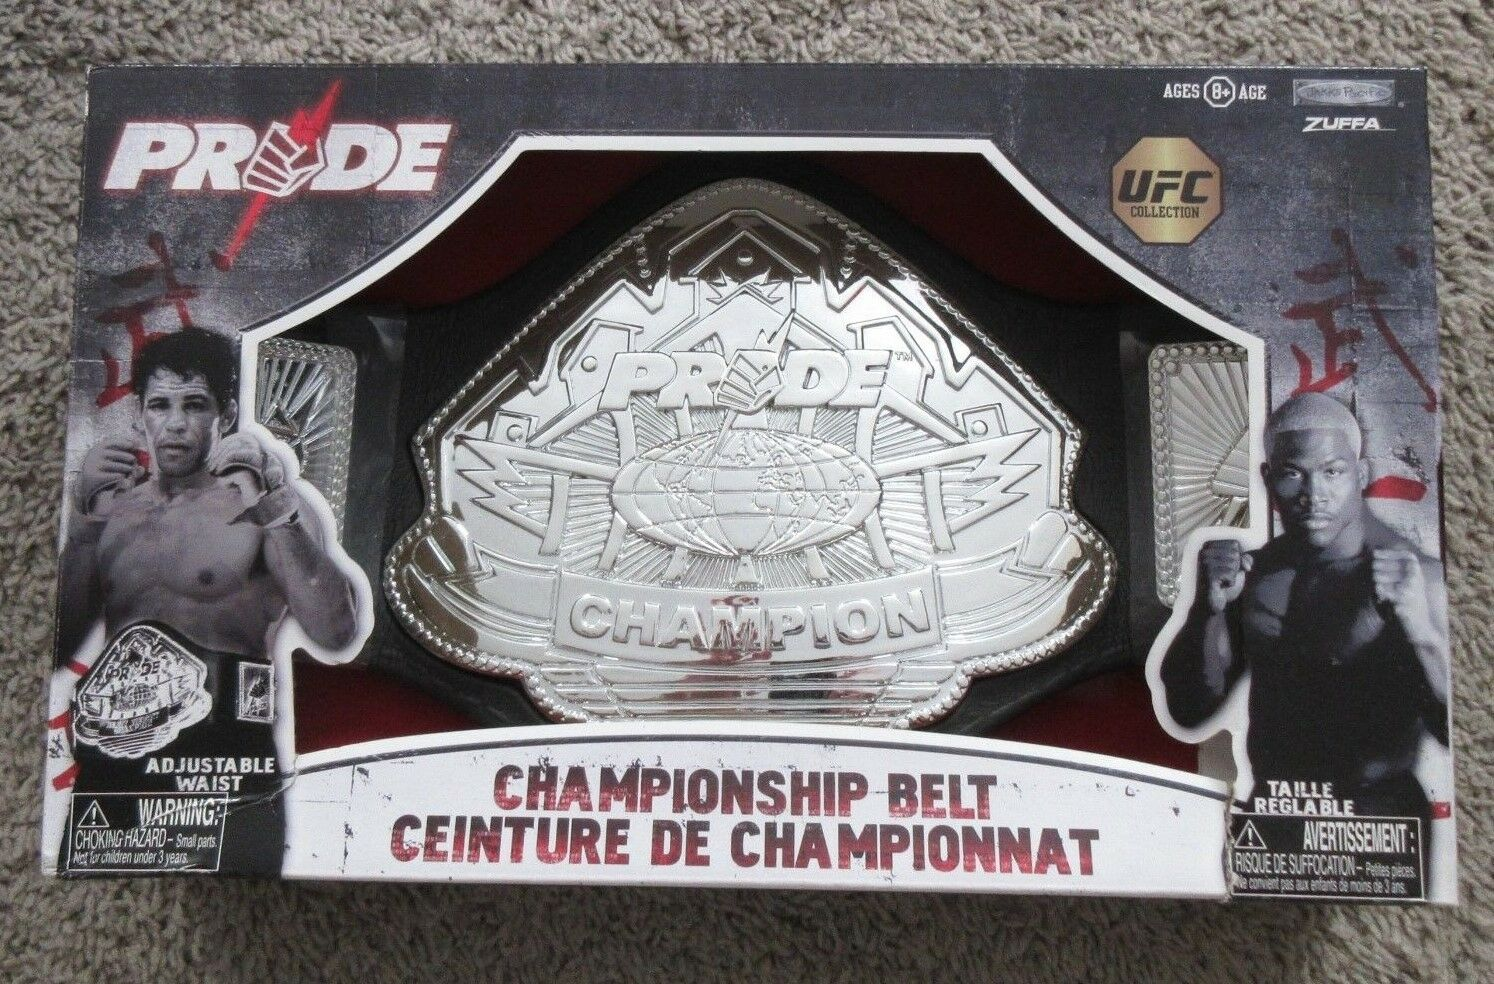 PRIDE UFC COLLECTION CHAMPIONSHIP BELT JAKKS PACIFIC ZUFFA RARE FOAM MMA